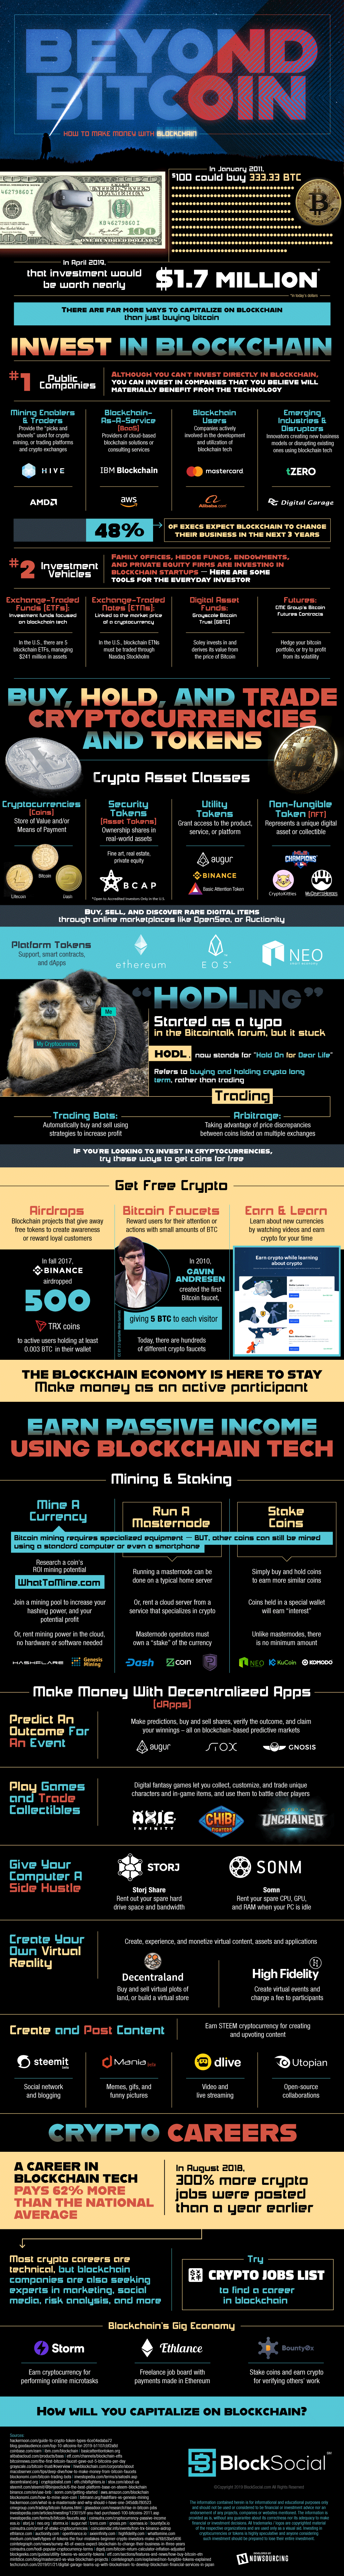 How to Make Money with Bitcoin infographic